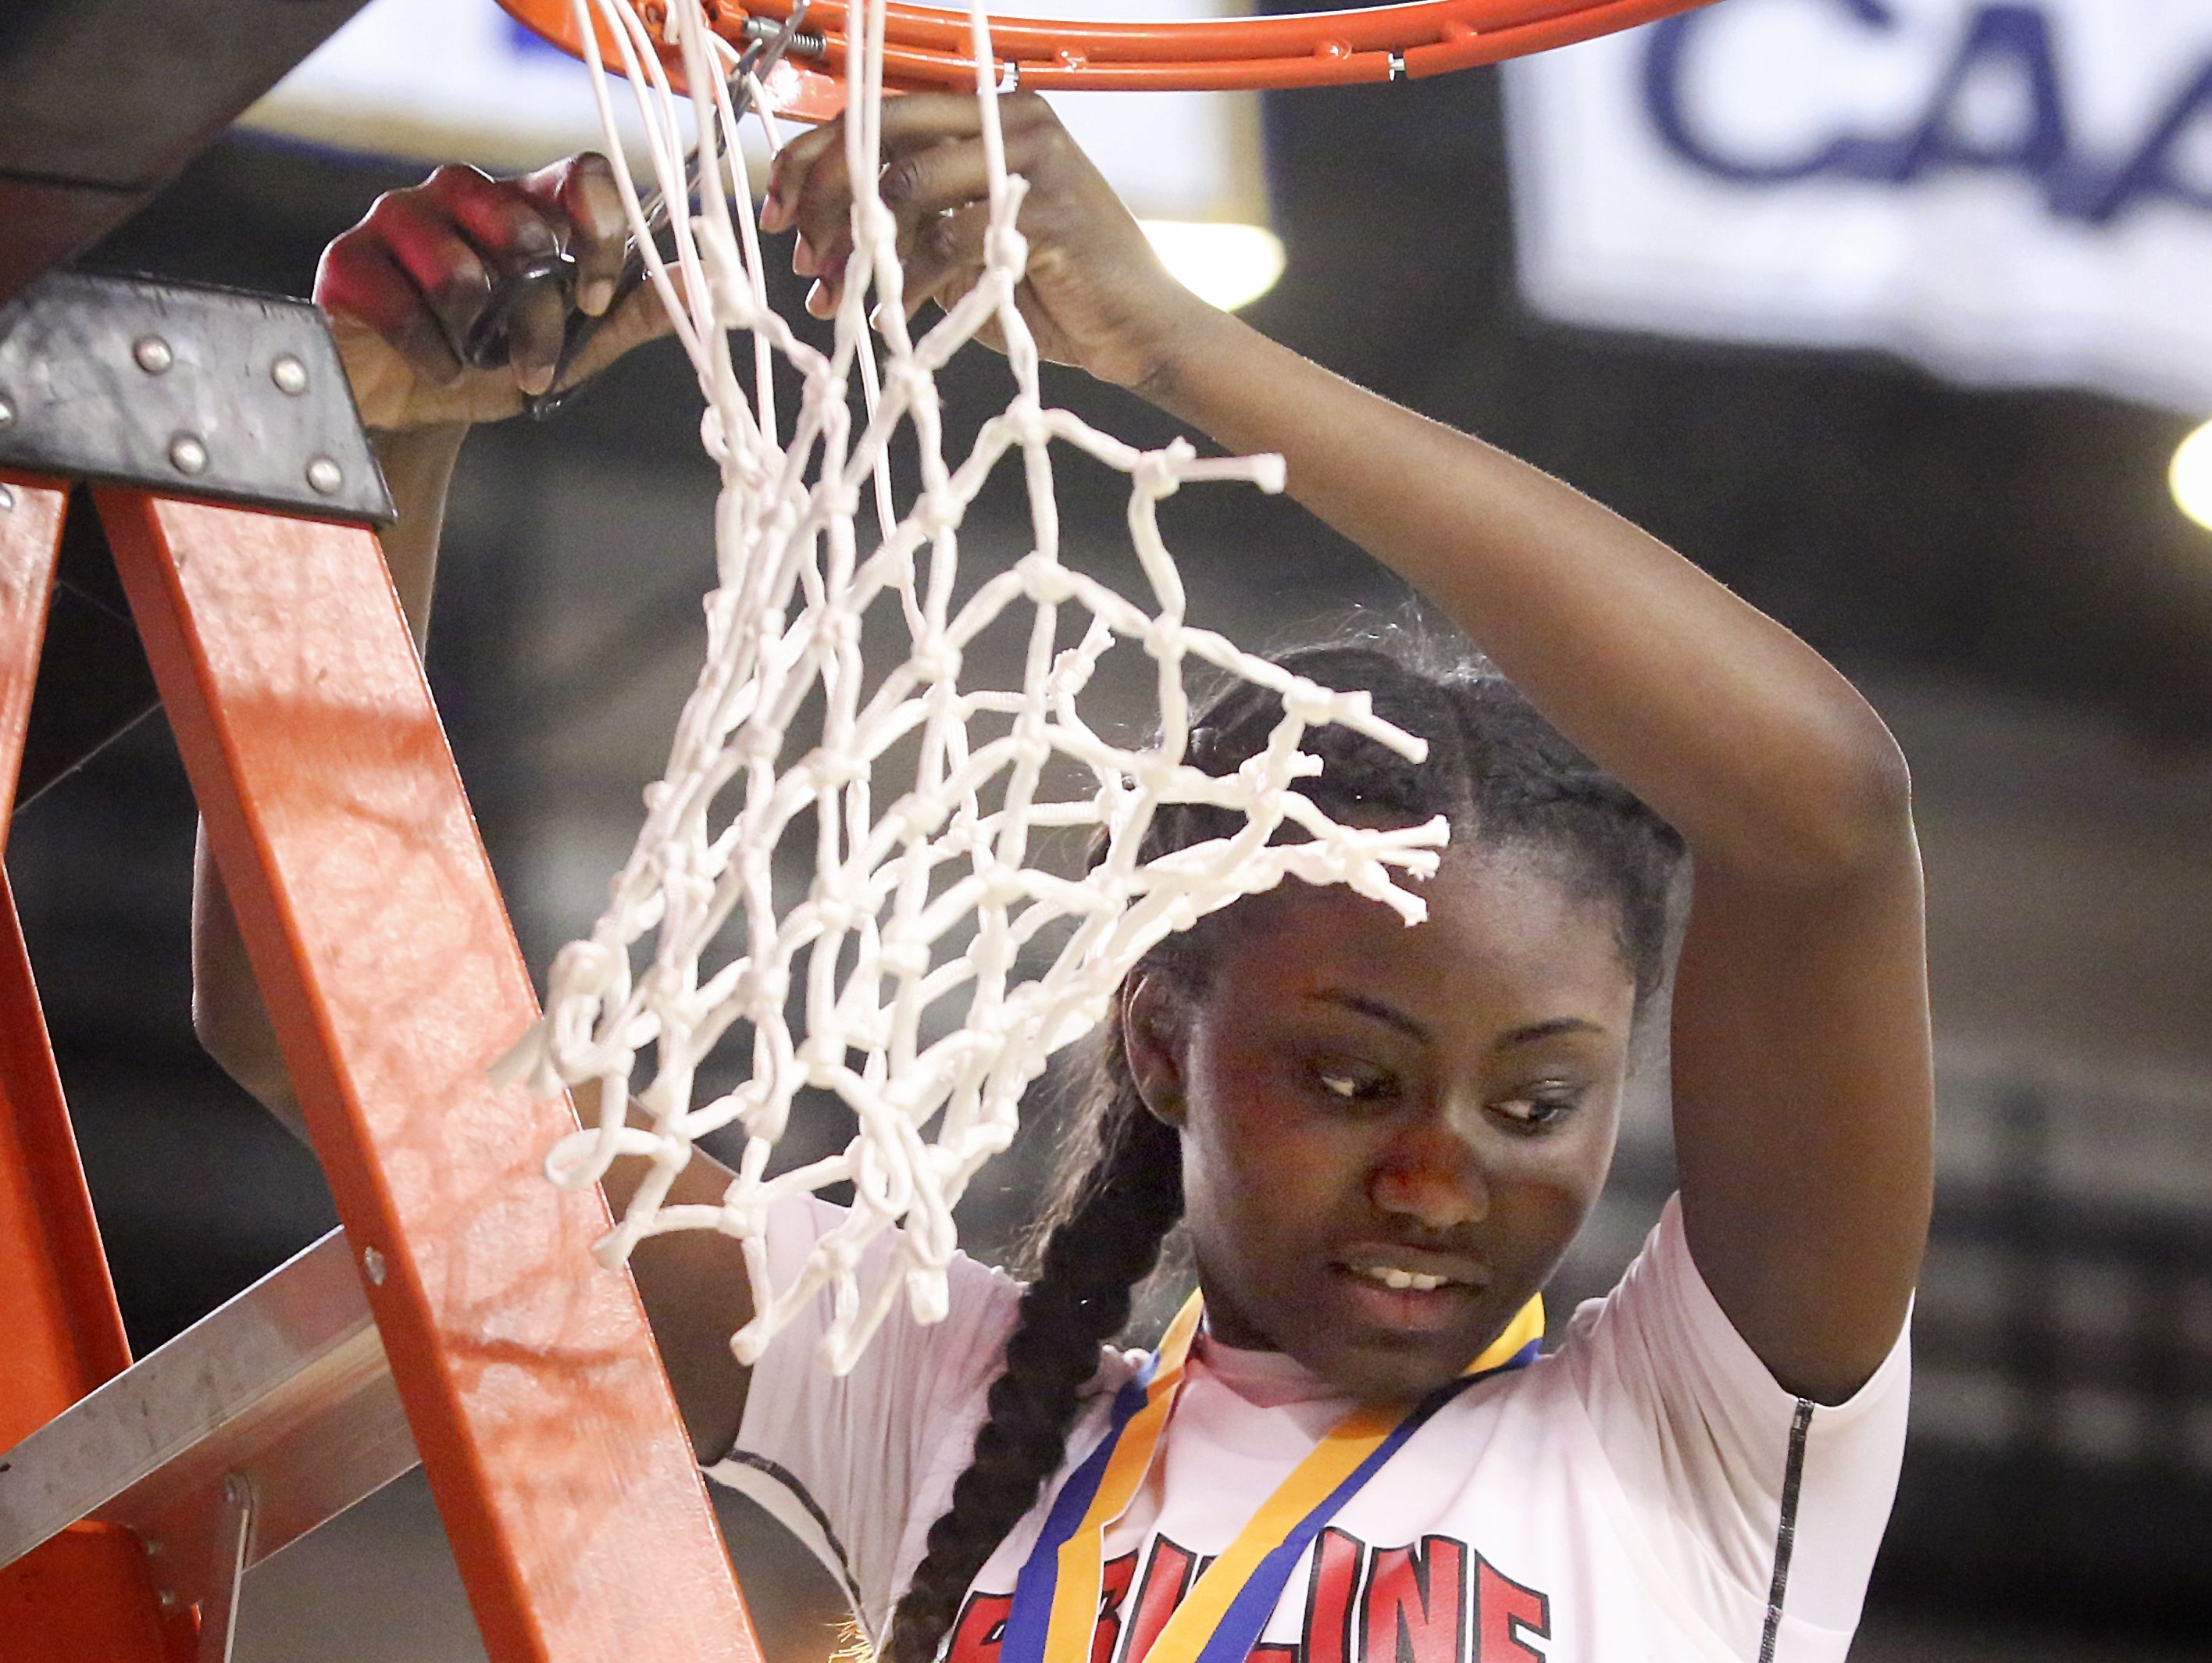 Ursuline's Kryshell Gordy claims her share of the net after the Raiders' 54-32 win in the DIAA Girls Basketball Tournament title game at the Bob Carpenter Center last Friday.